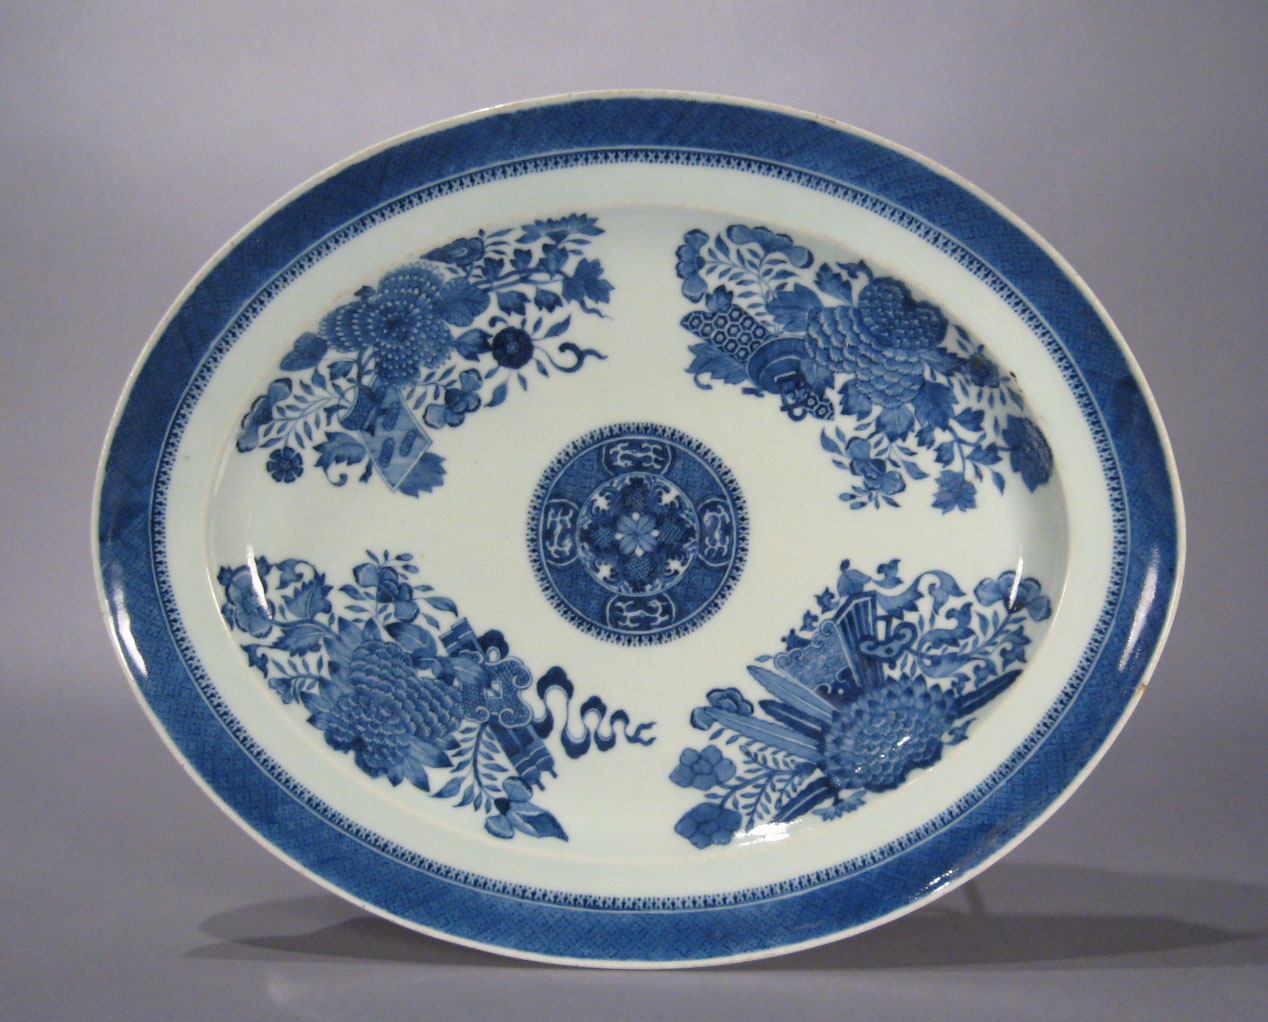 Chinese Export Porcelain Blue And White Soup Tureen C 1810